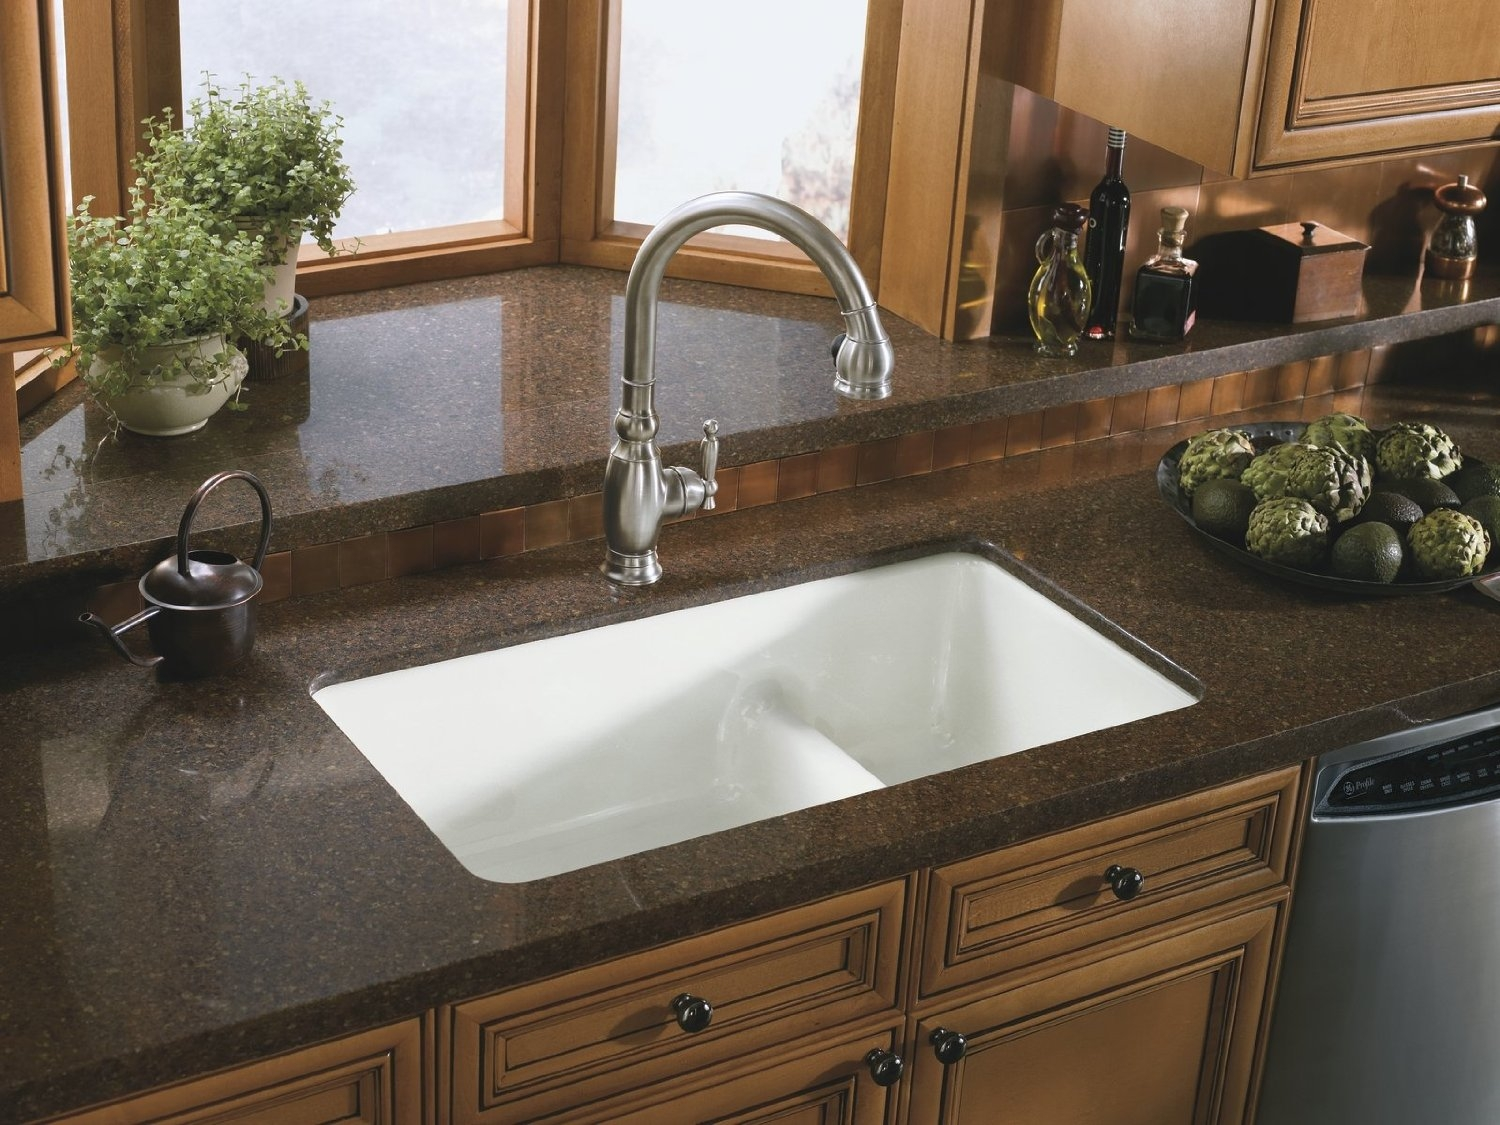 Ideas, kitchen sink faucets for granite countertops kitchen sink faucets for granite countertops 28 kitchen faucets for granite countertops moen s arbor one 1500 x 1125  .